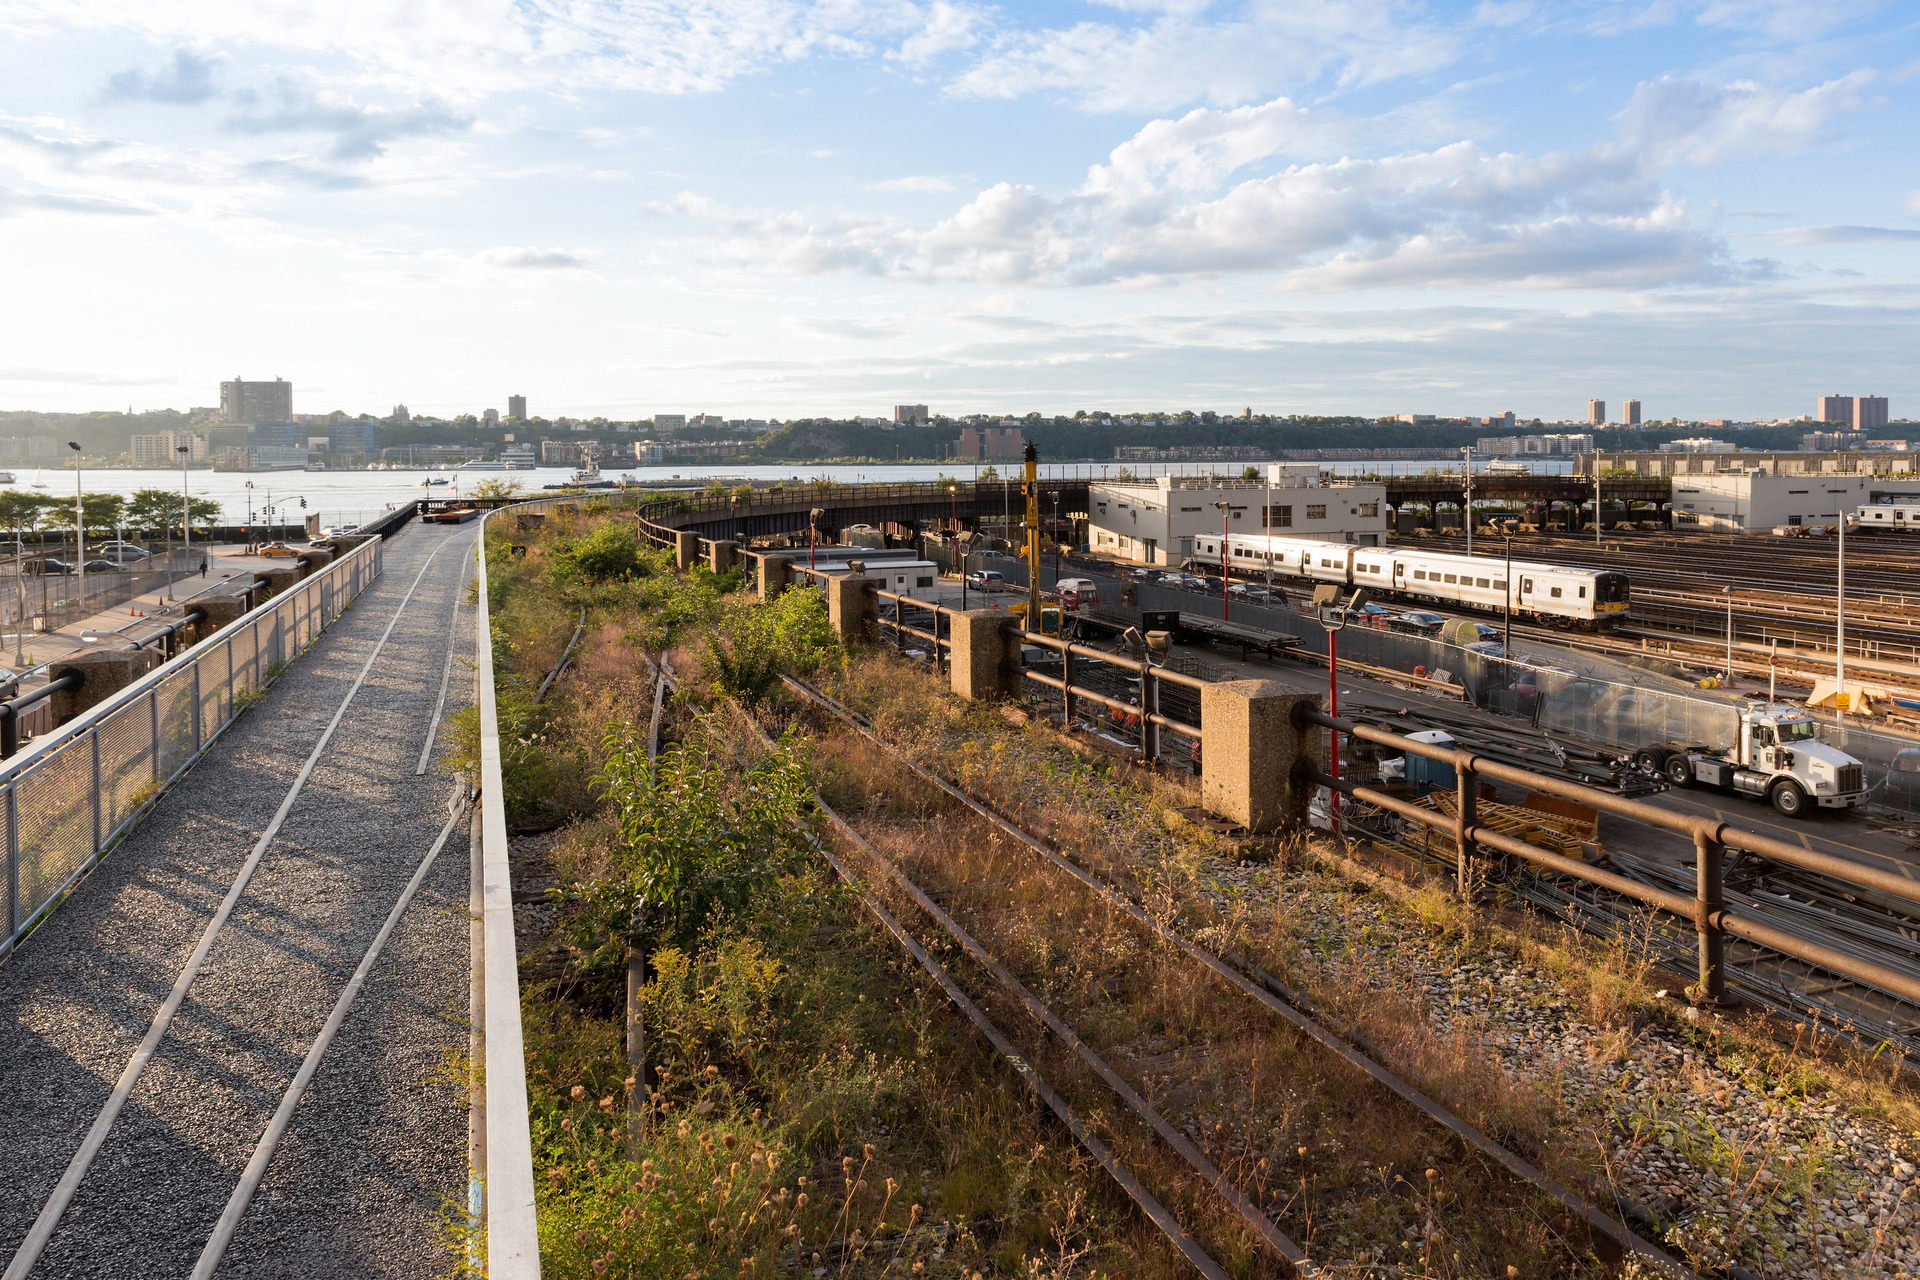 1405-high-line-at-the-rail-yards-photo-by-iwan-baan.jpeg